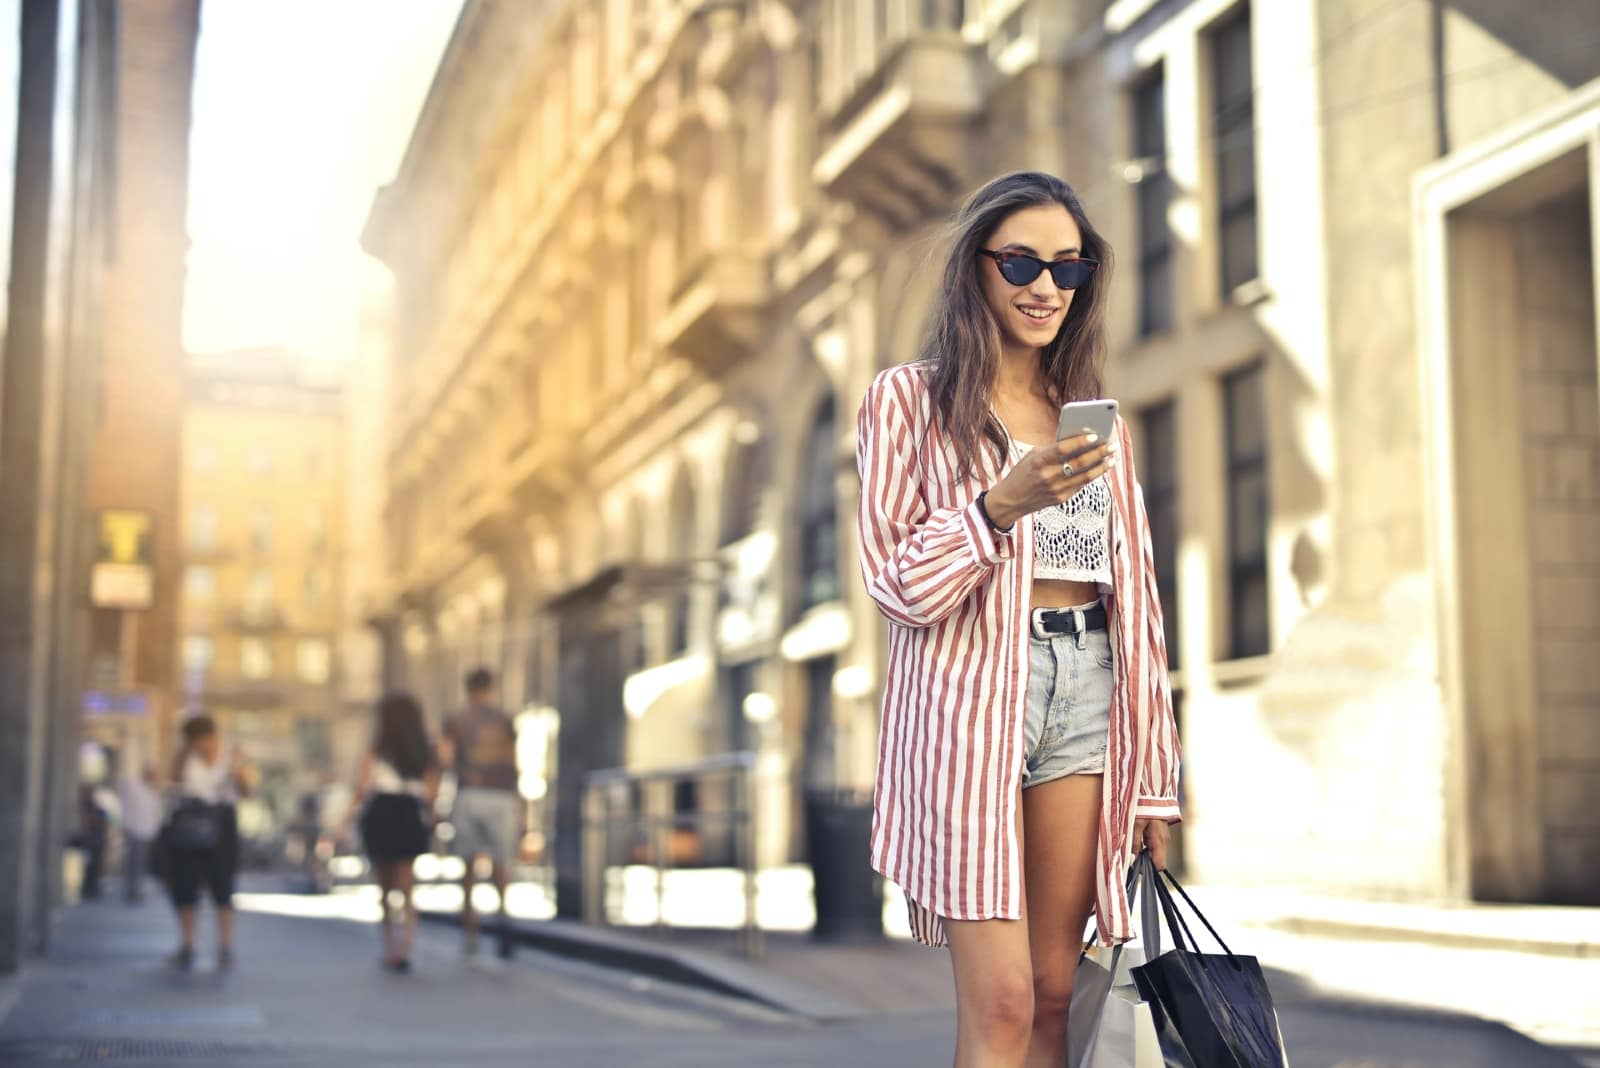 woman using smartphone while standing on the street